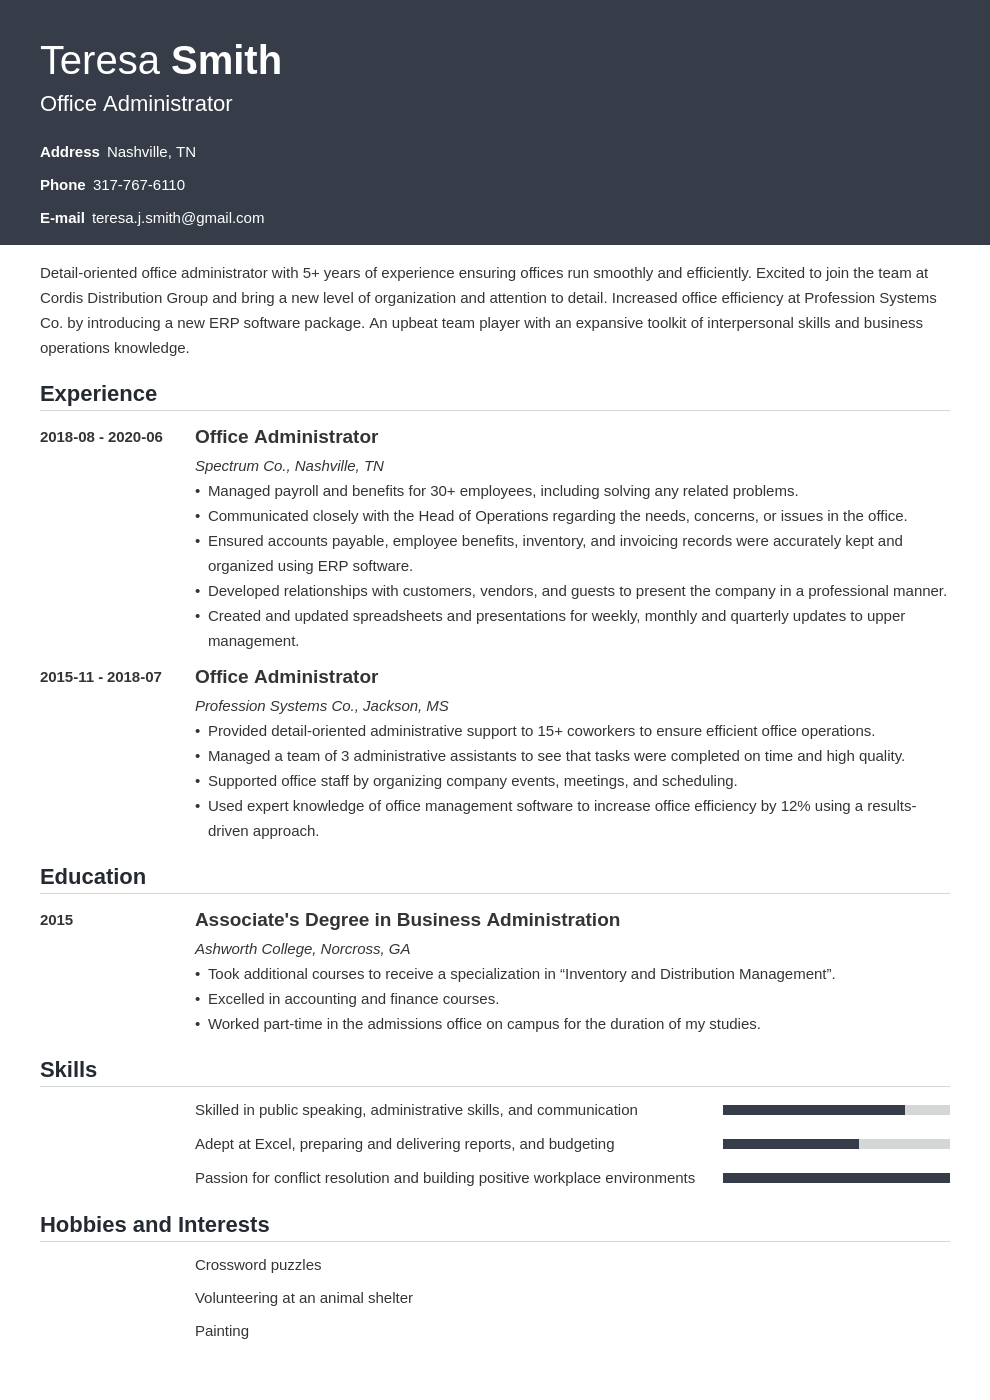 Free administration resume examples esl biography proofreading for hire for phd